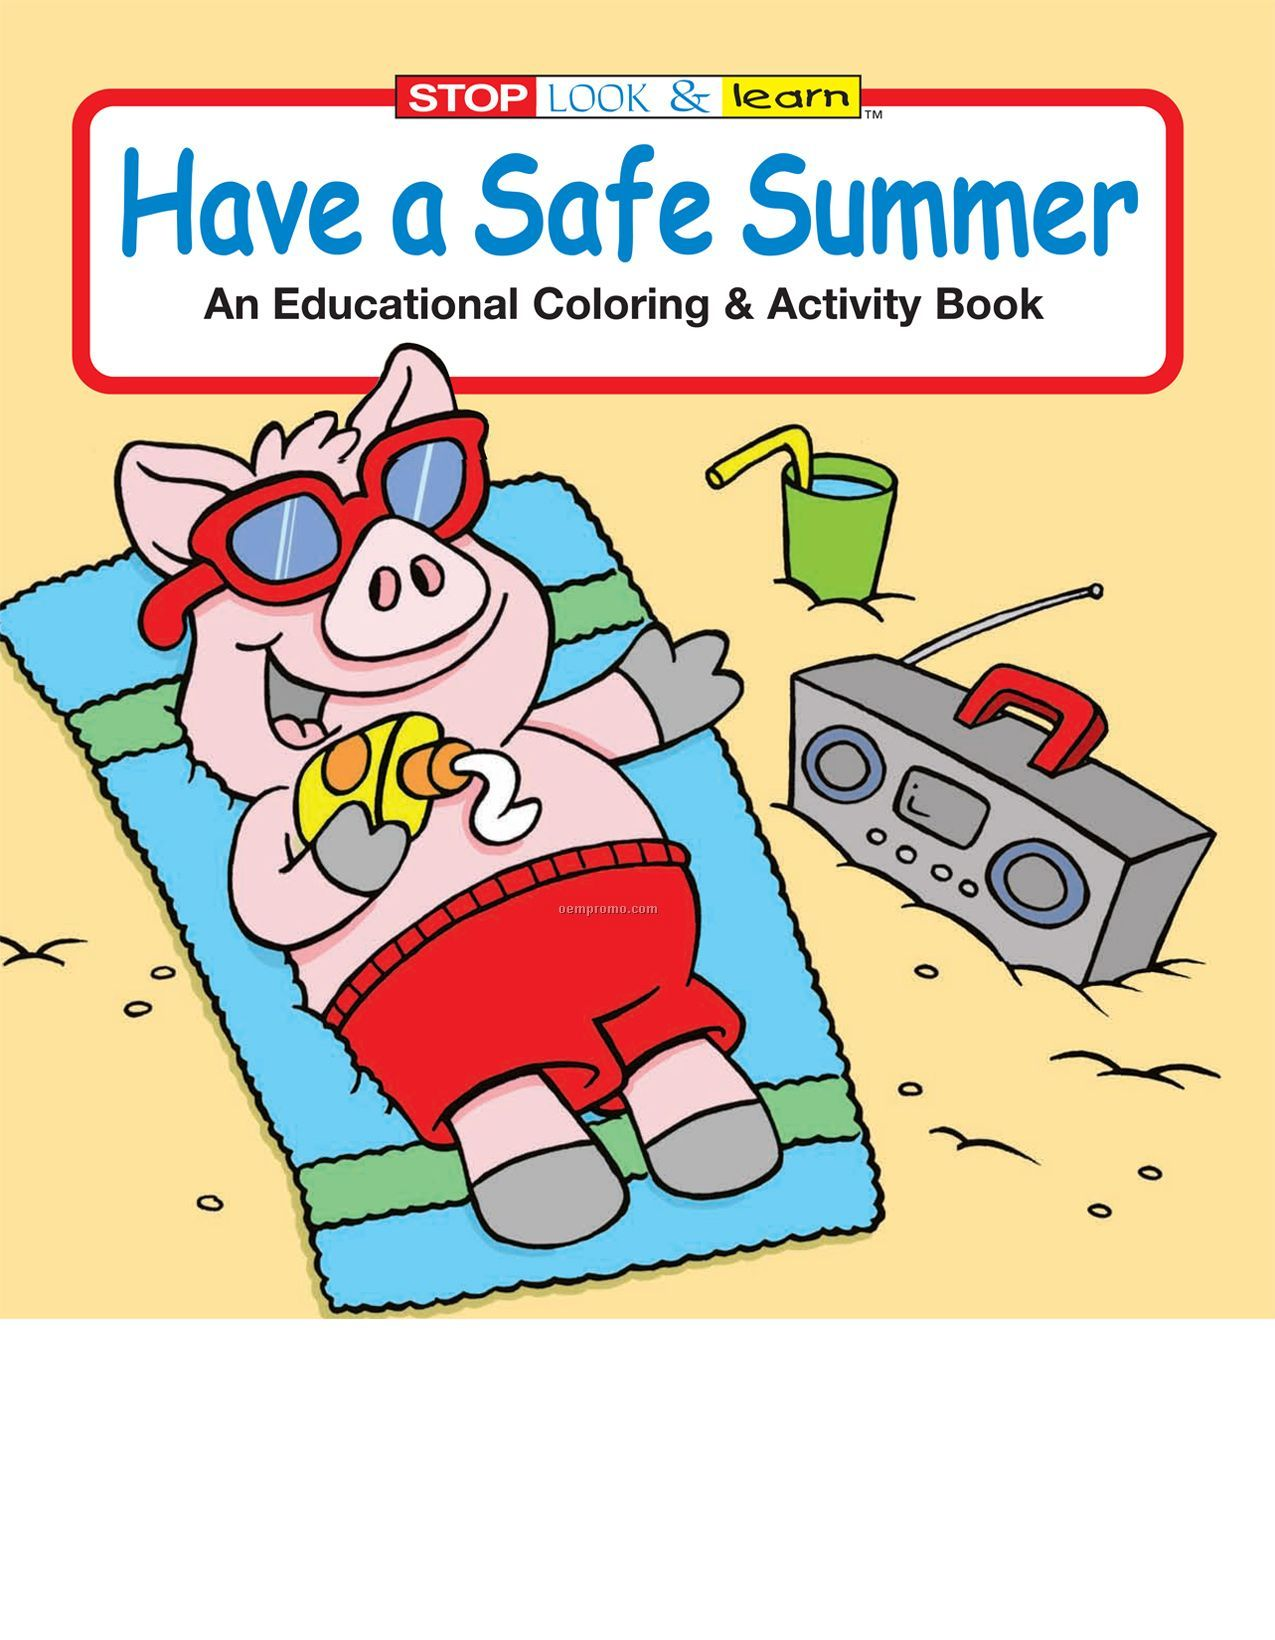 Water Safety Coloring Books For Kids Book Covers